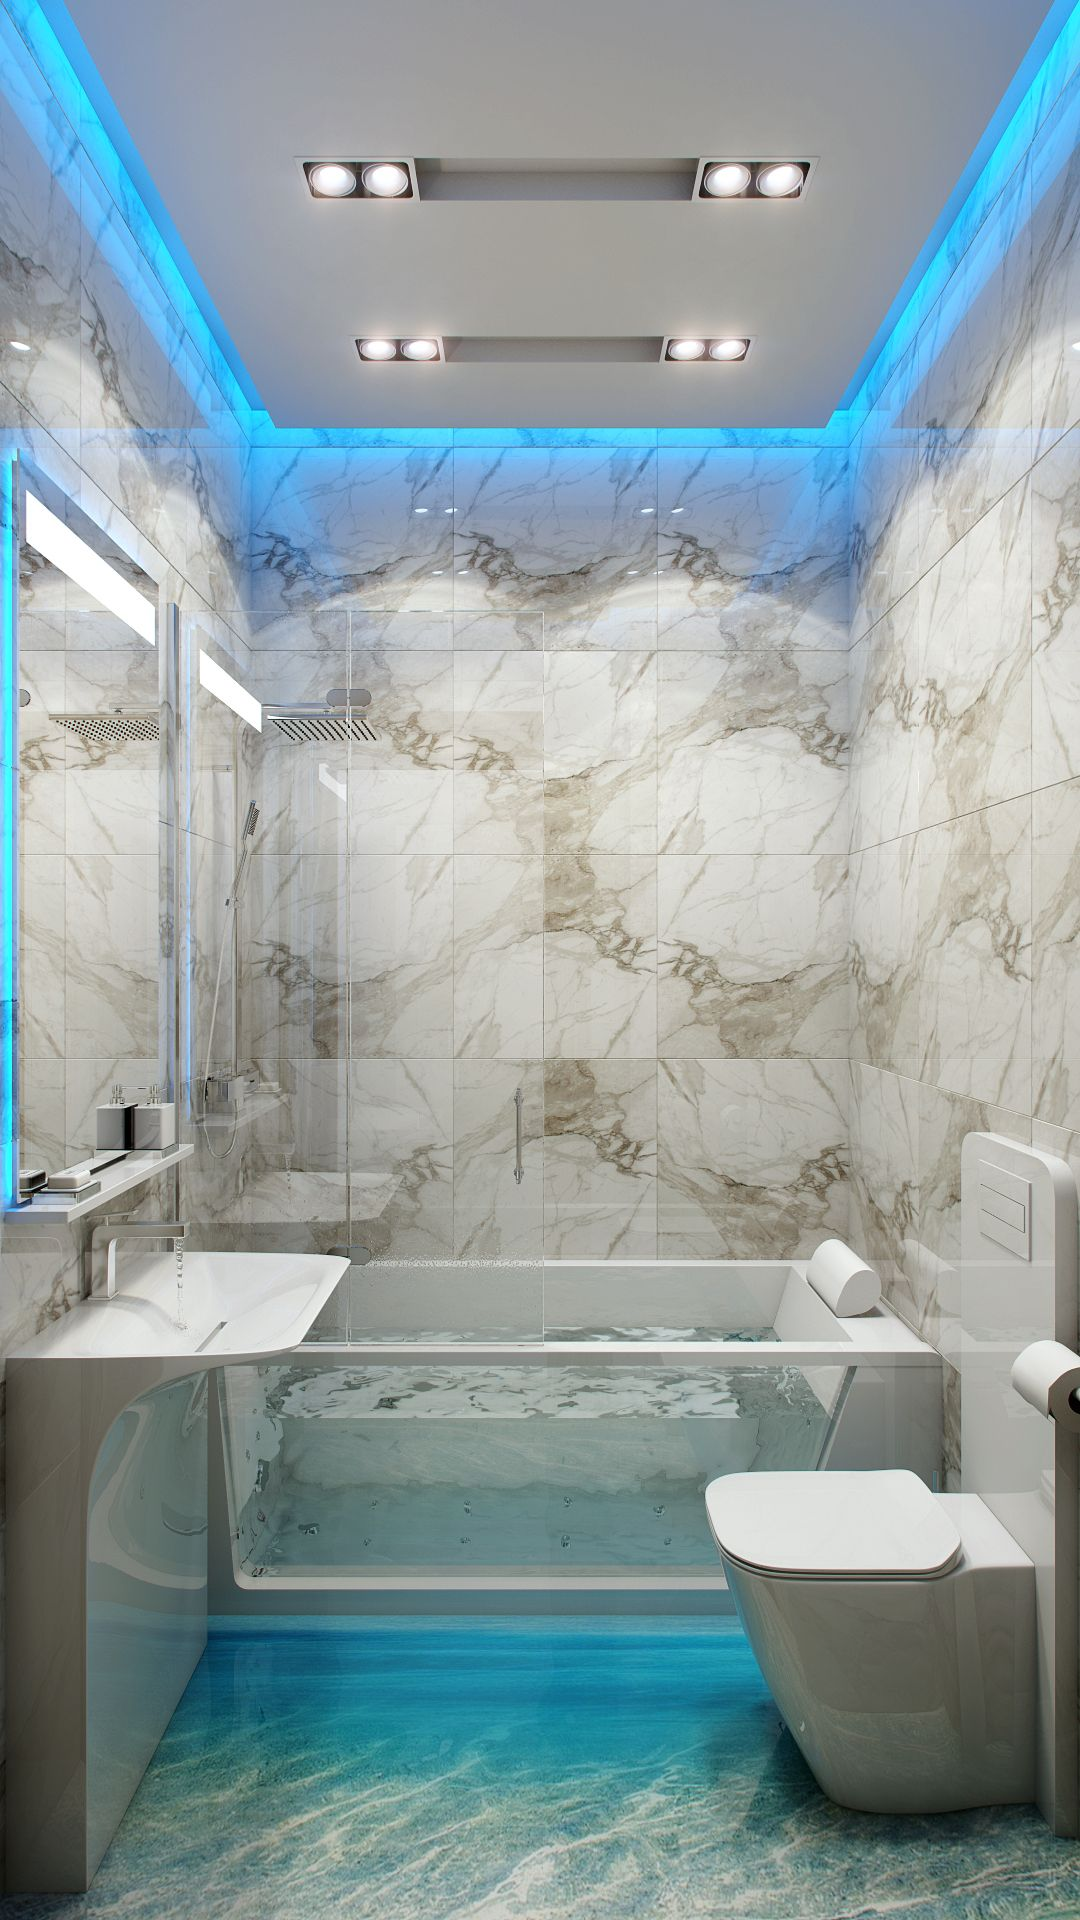 Bright Led Bathroom Lighting the tub makes the shower-only me want to take a bath. check out